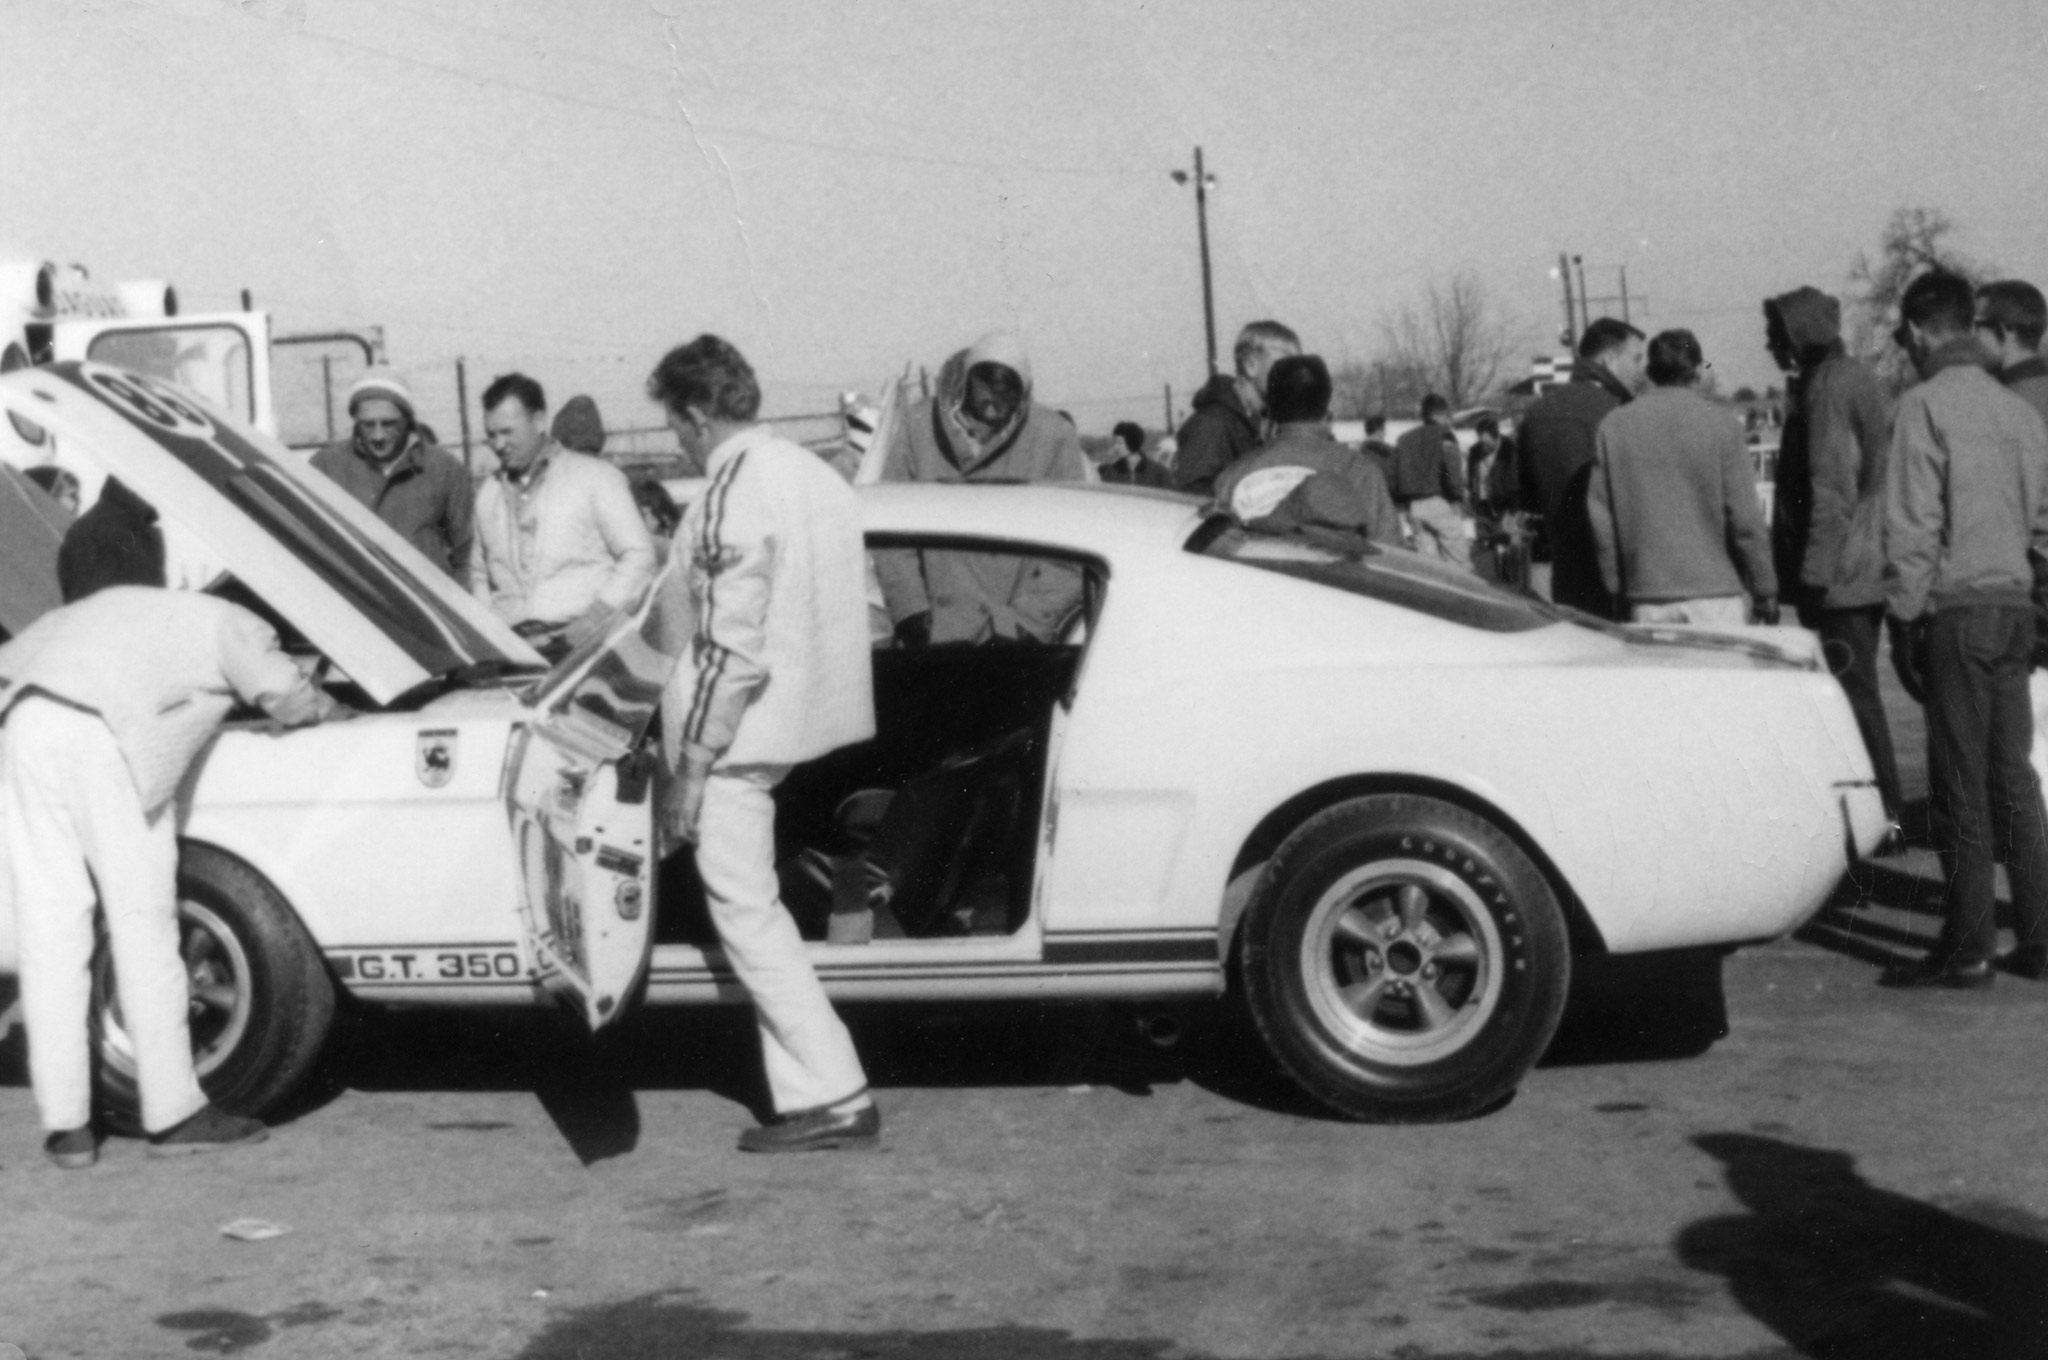 This was the first frame shot by Glenn Alford that early Sunday morning. Shelby GT 350 crew chief Ron Butler is seen depressing the gas pedal after replacing the oil filter gasket and the portion of oil lost from the failed filter gasket. On the drivers side with the long brown coat and stocking cap is Shelby driver Ken Miles.   (Glenn Alford photo)